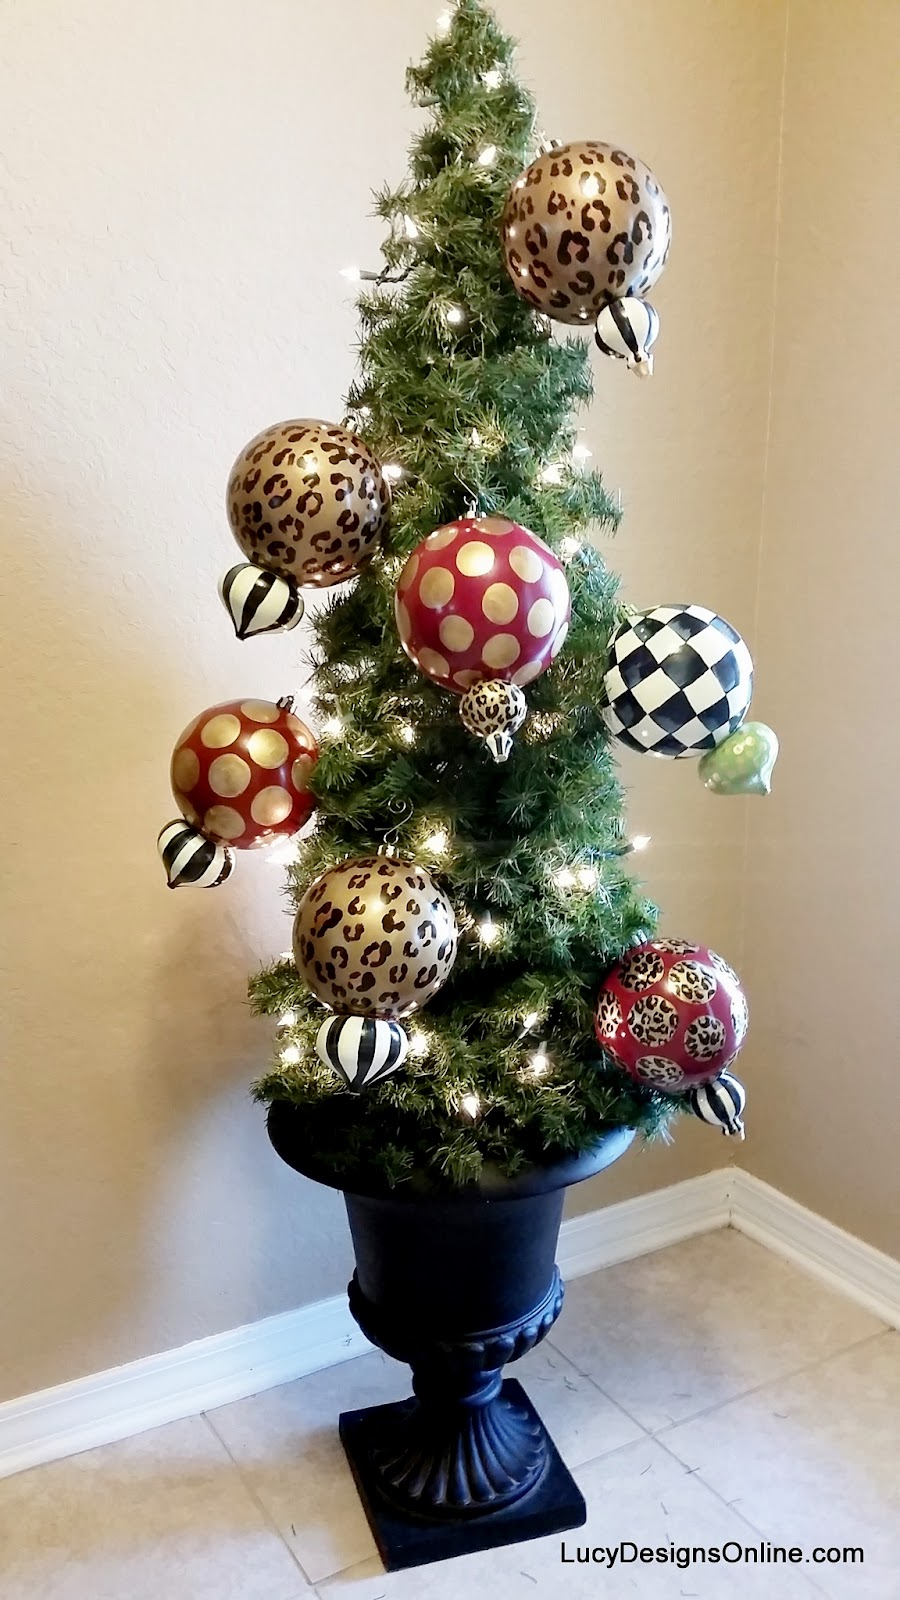 Hand Painted Christmas Ornaments Black And White Checks Stripes Animal Print Large Whimisical